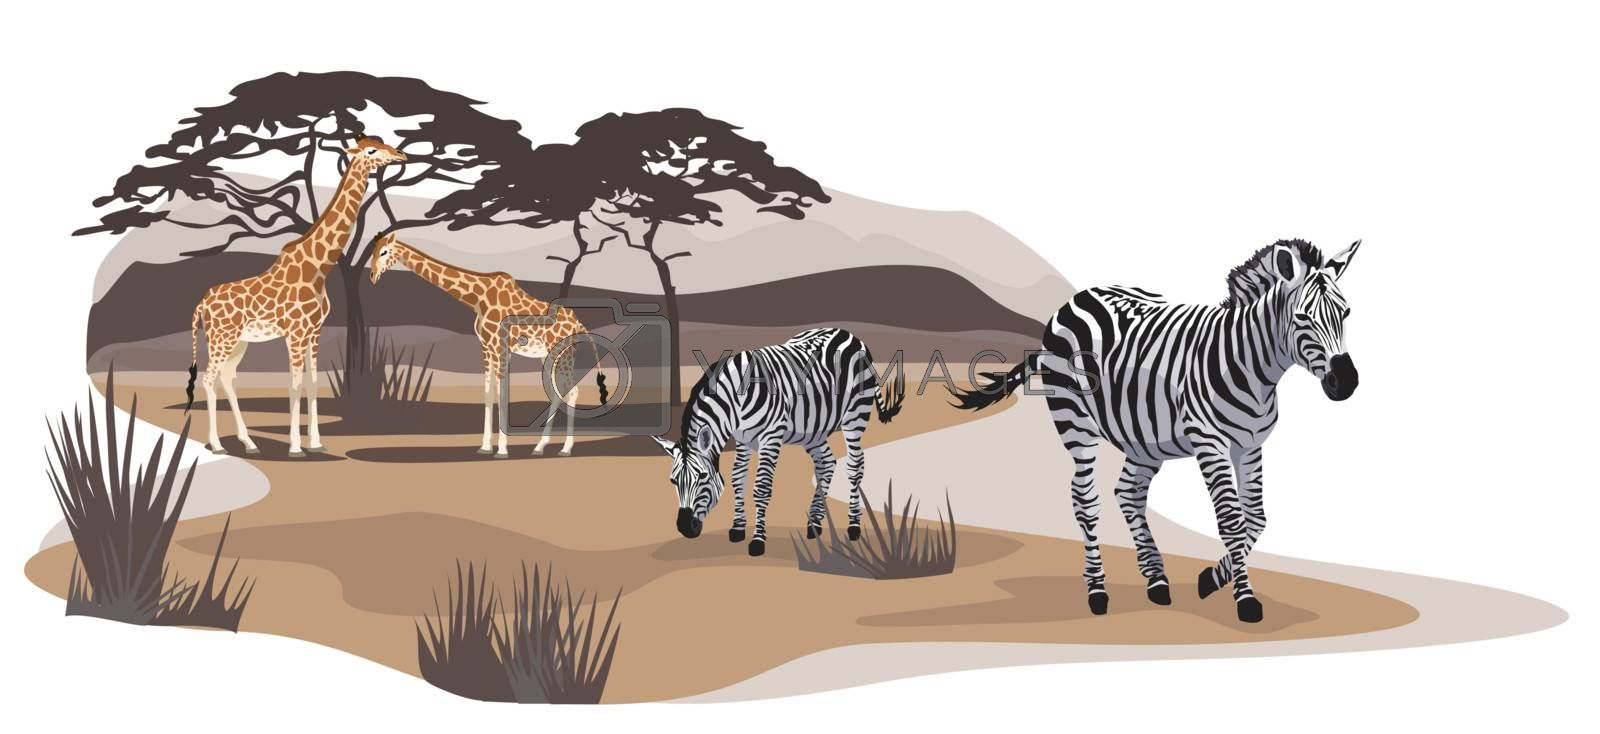 Illustration of zebras and giraffes on savannah